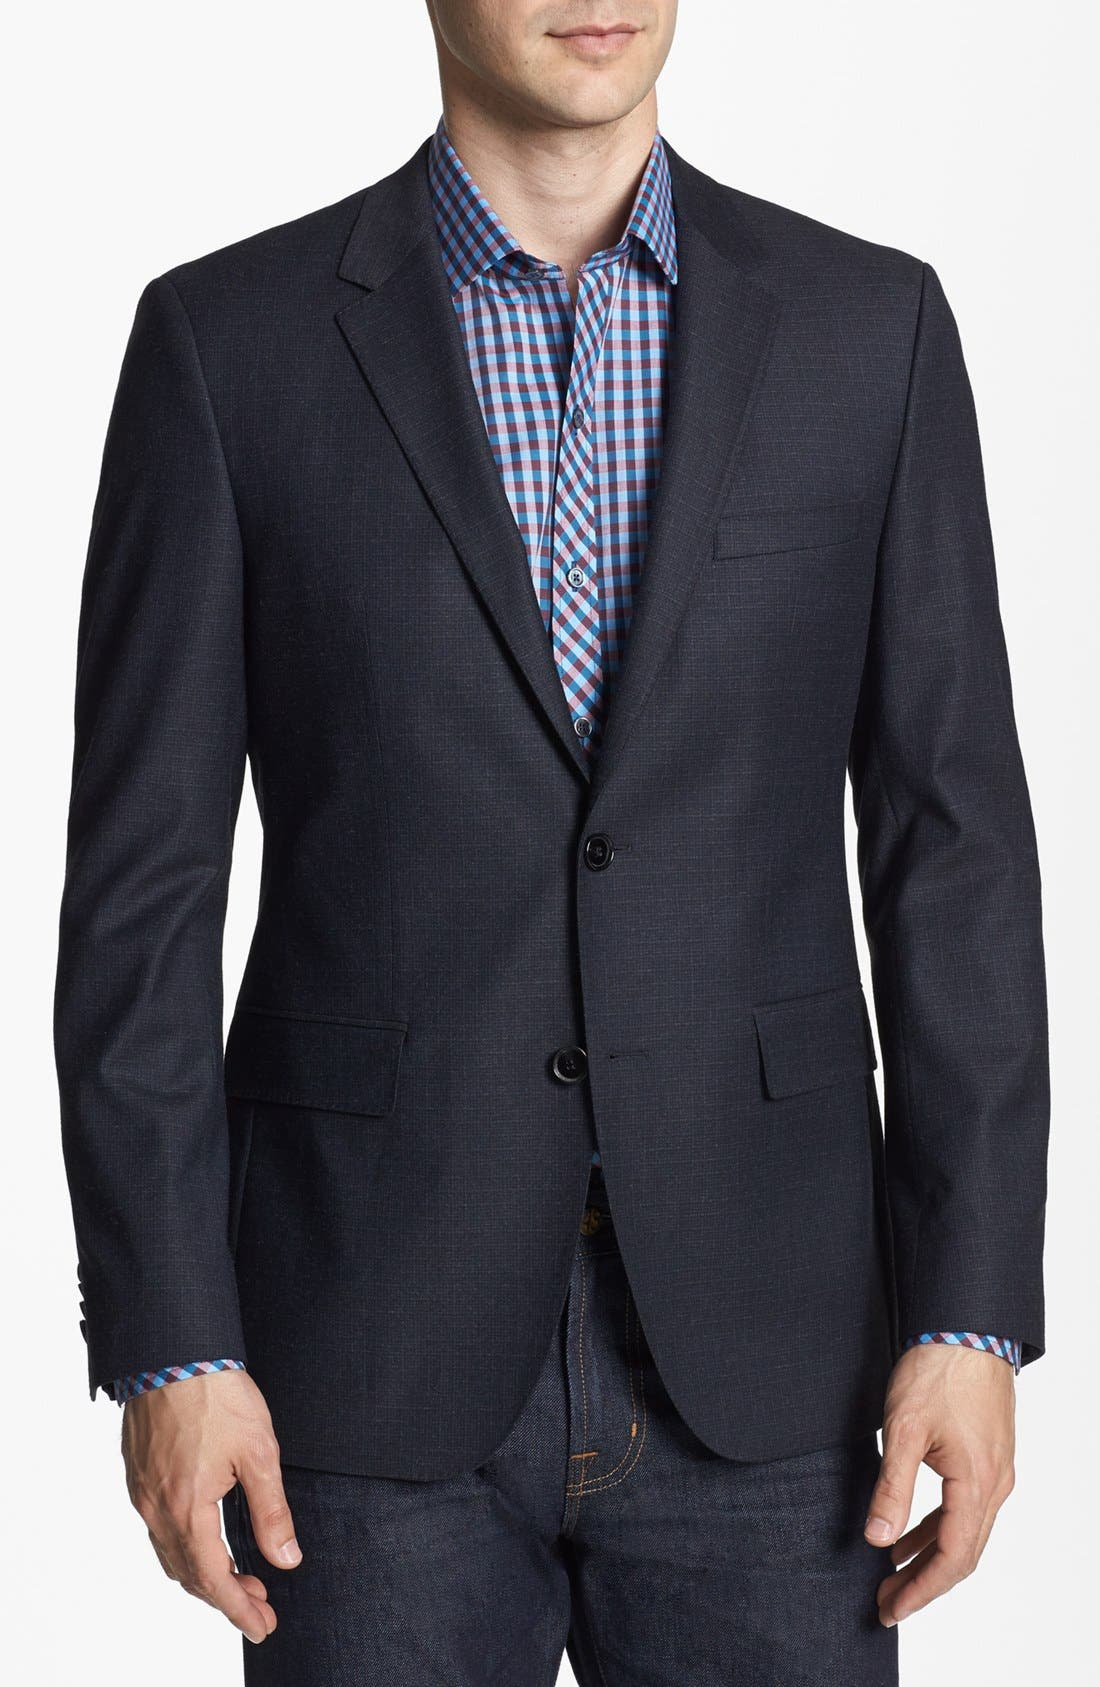 Main Image - BOSS HUGO BOSS 'Coast Us' Mélange Check Sportcoat